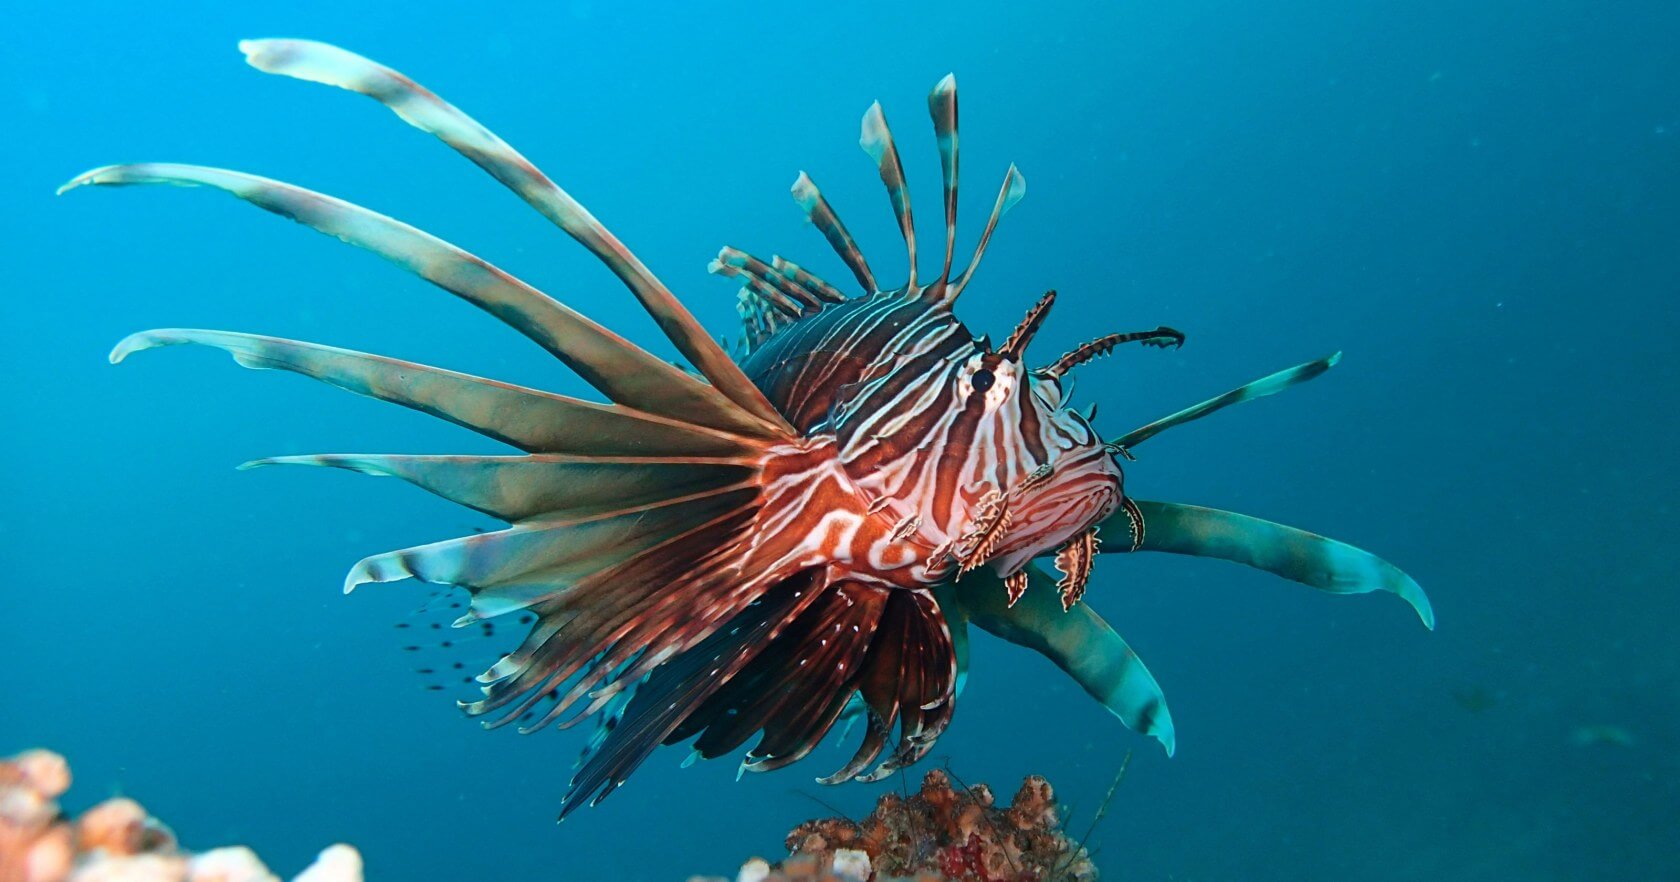 Polytech students are developing a submersible robot to hunt Lionfish